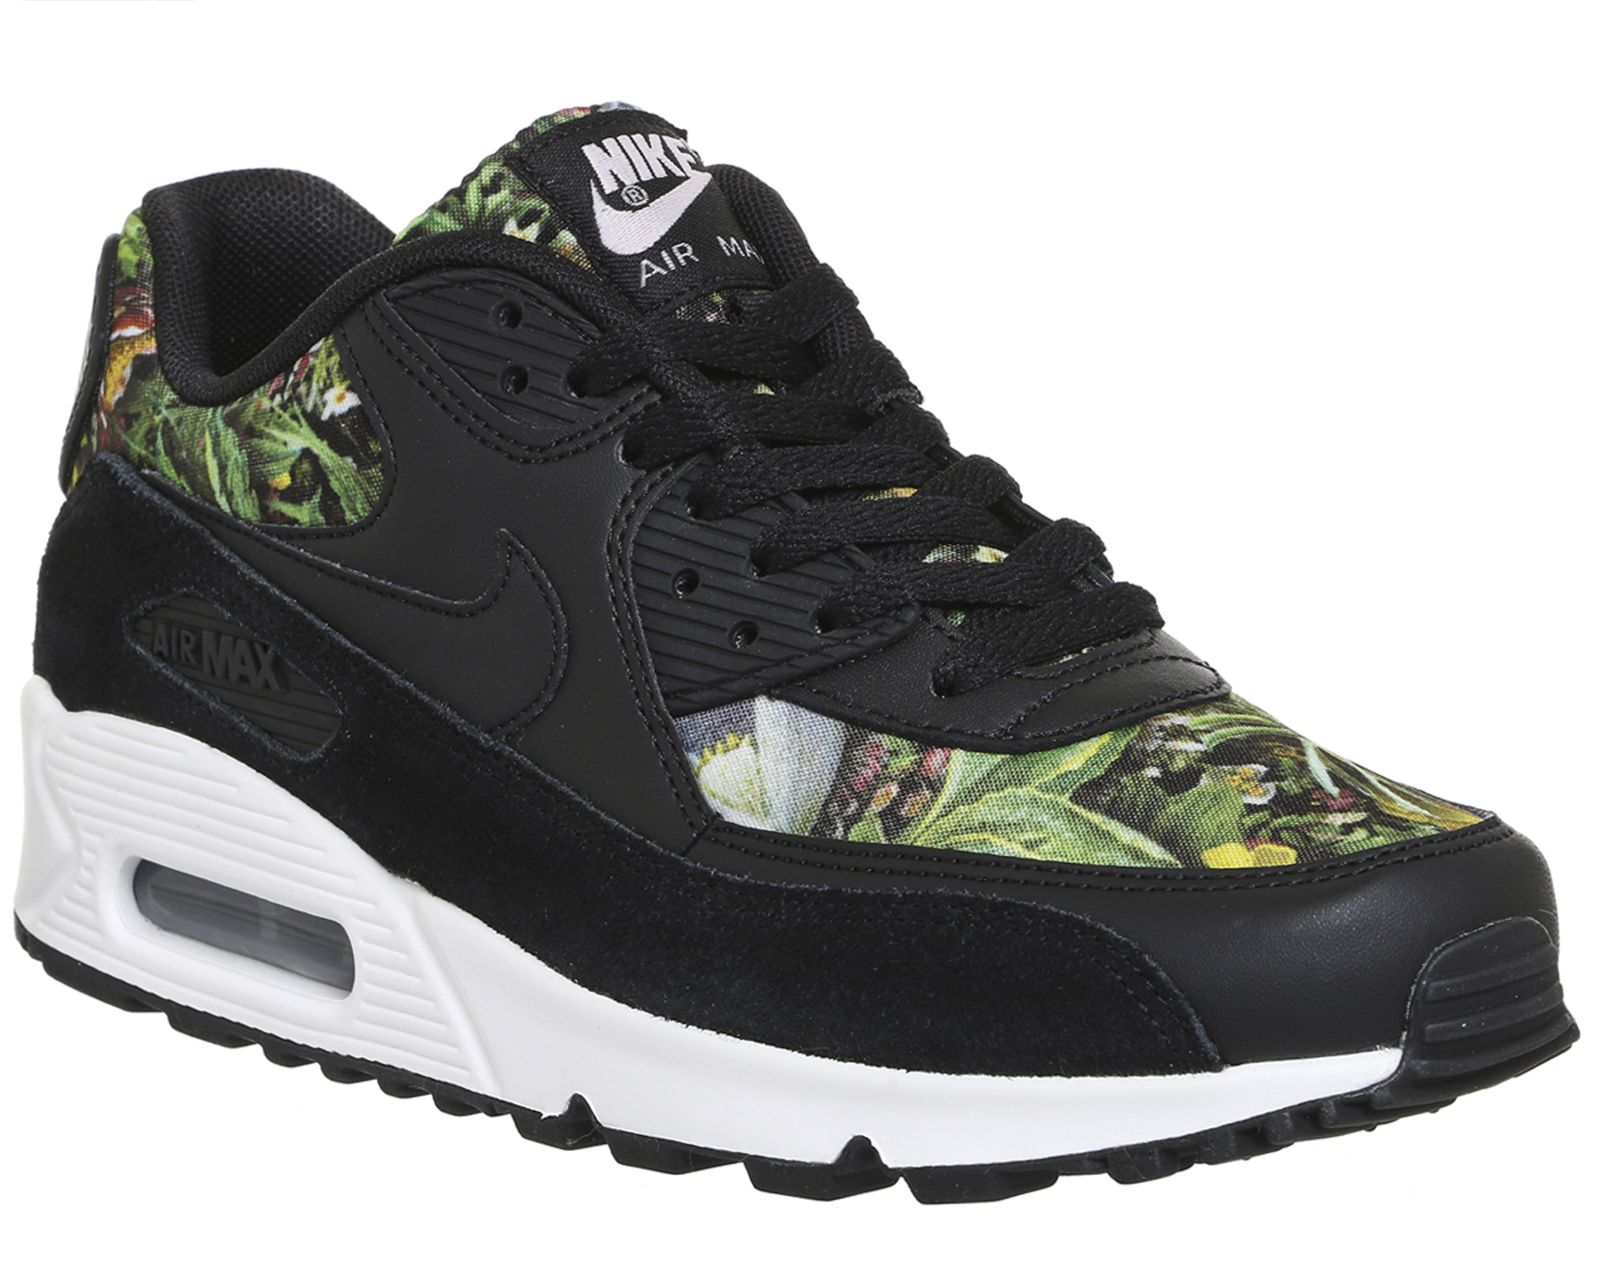 0ecaa0f34d6f Nike Air Max 90 Black Prism Pink Summit White - Unisex Sports